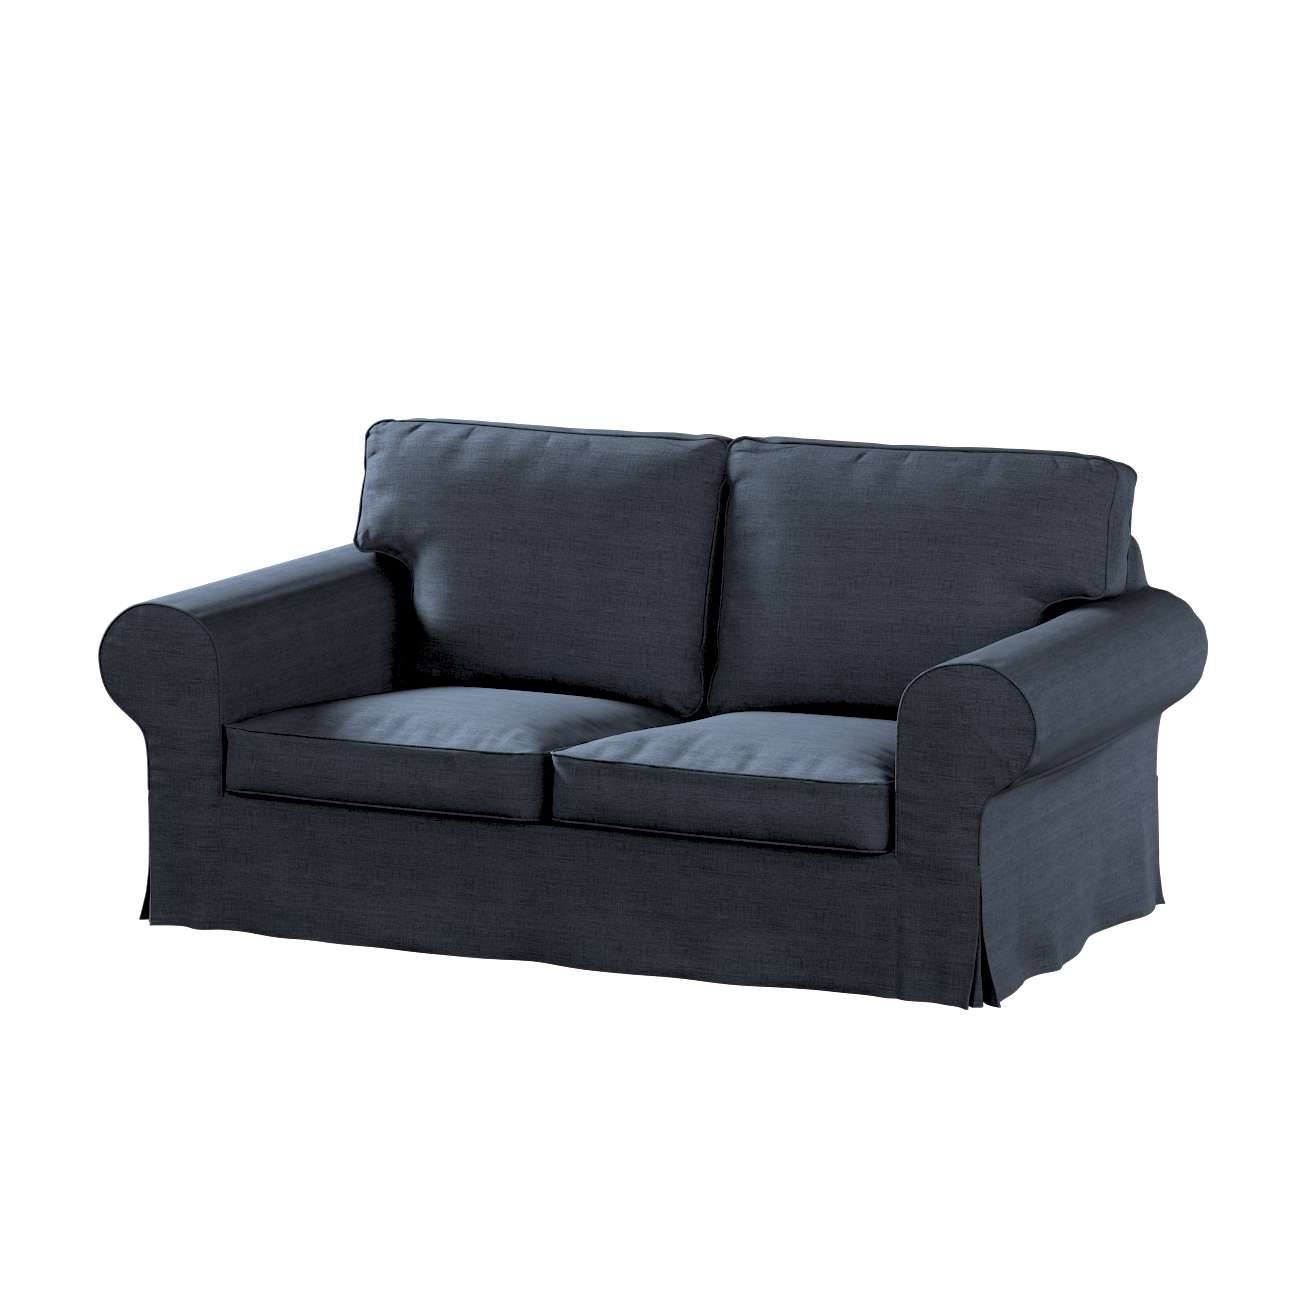 Ektorp 2-seater sofa cover in collection Living, fabric: 161-06